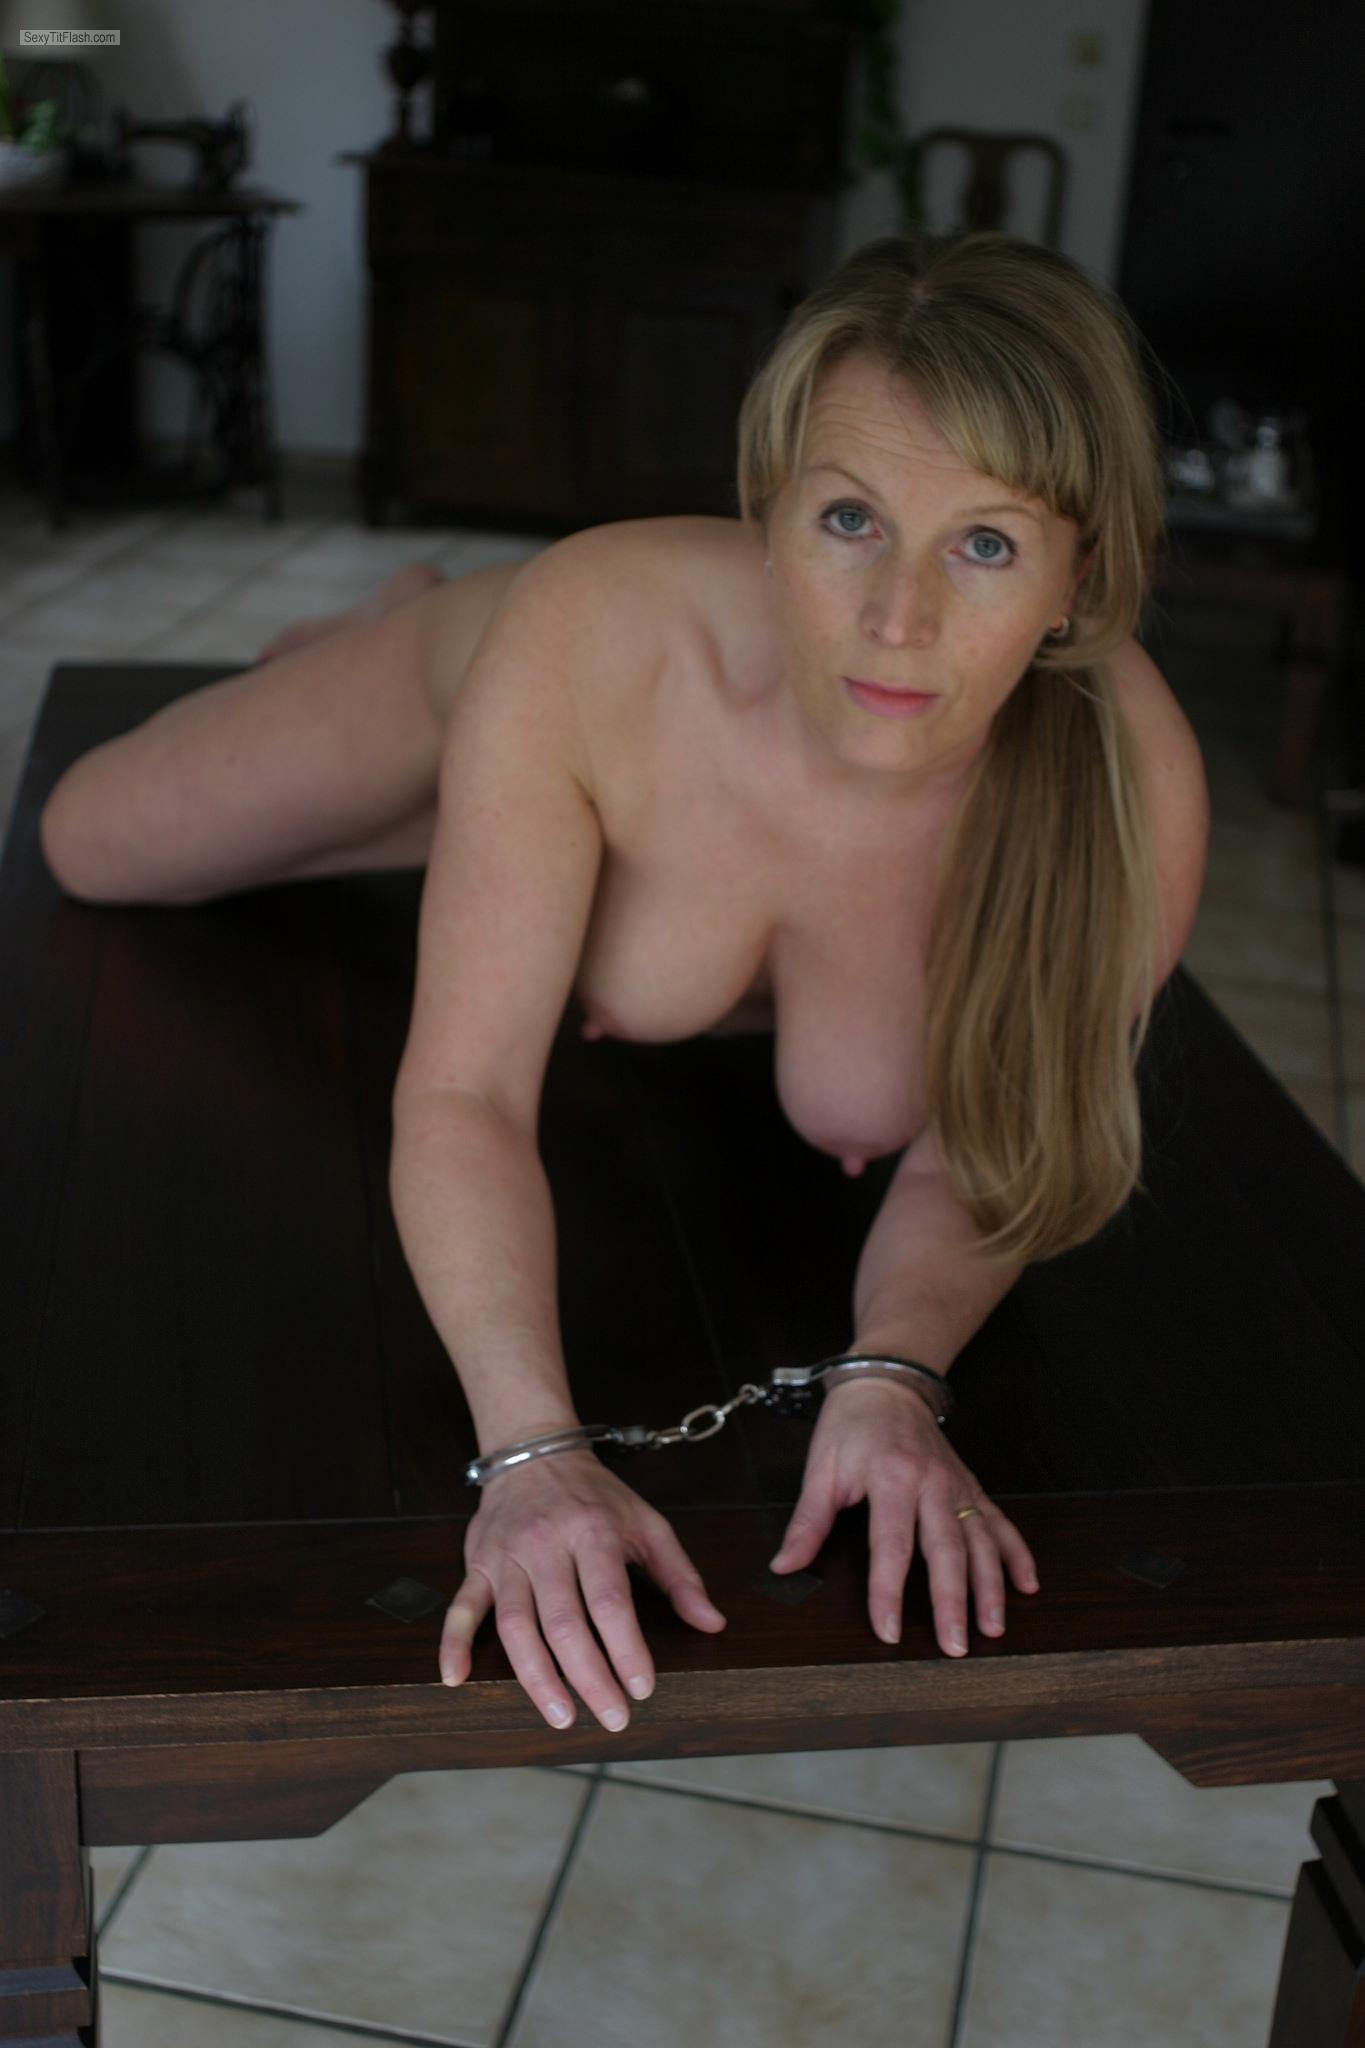 Very small Tits Of A Friend Topless Eva K. Handcuffed